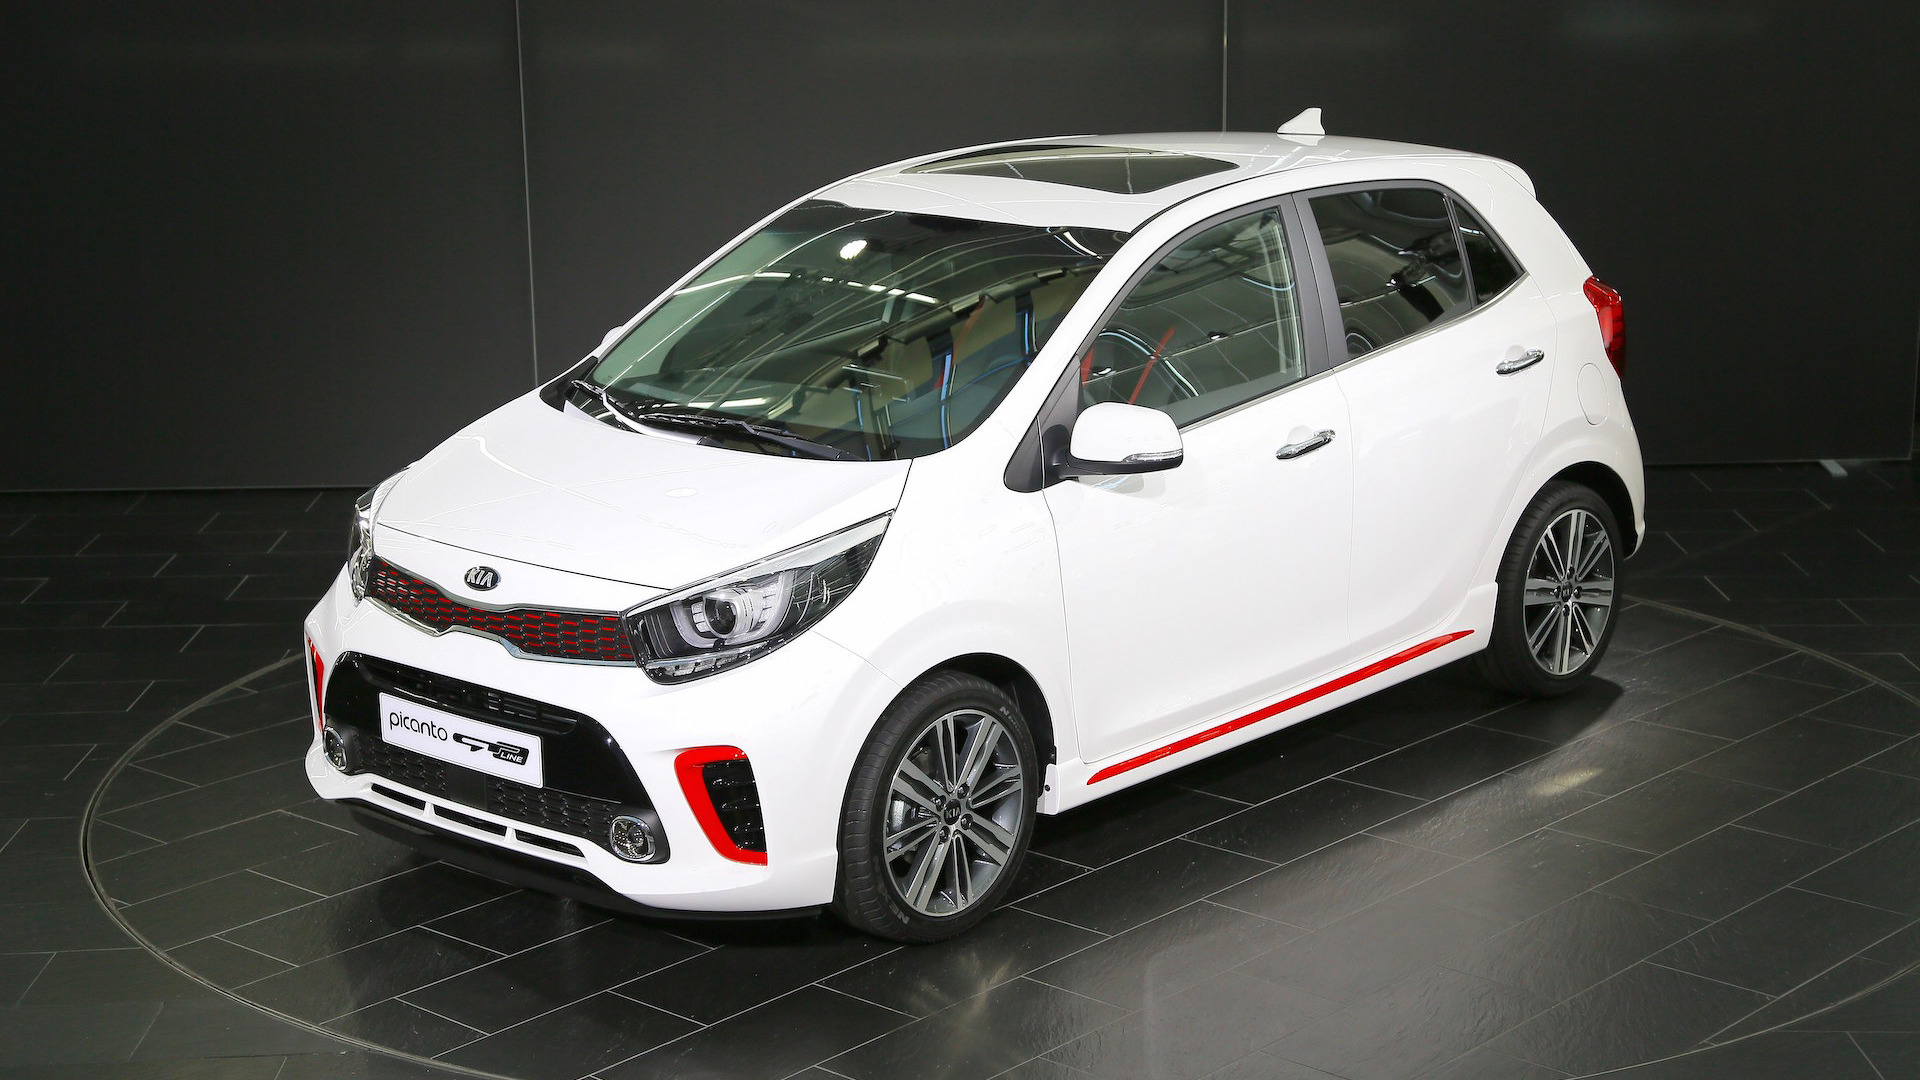 new kia picanto goes on sale in europe this spring 42 photos. Black Bedroom Furniture Sets. Home Design Ideas